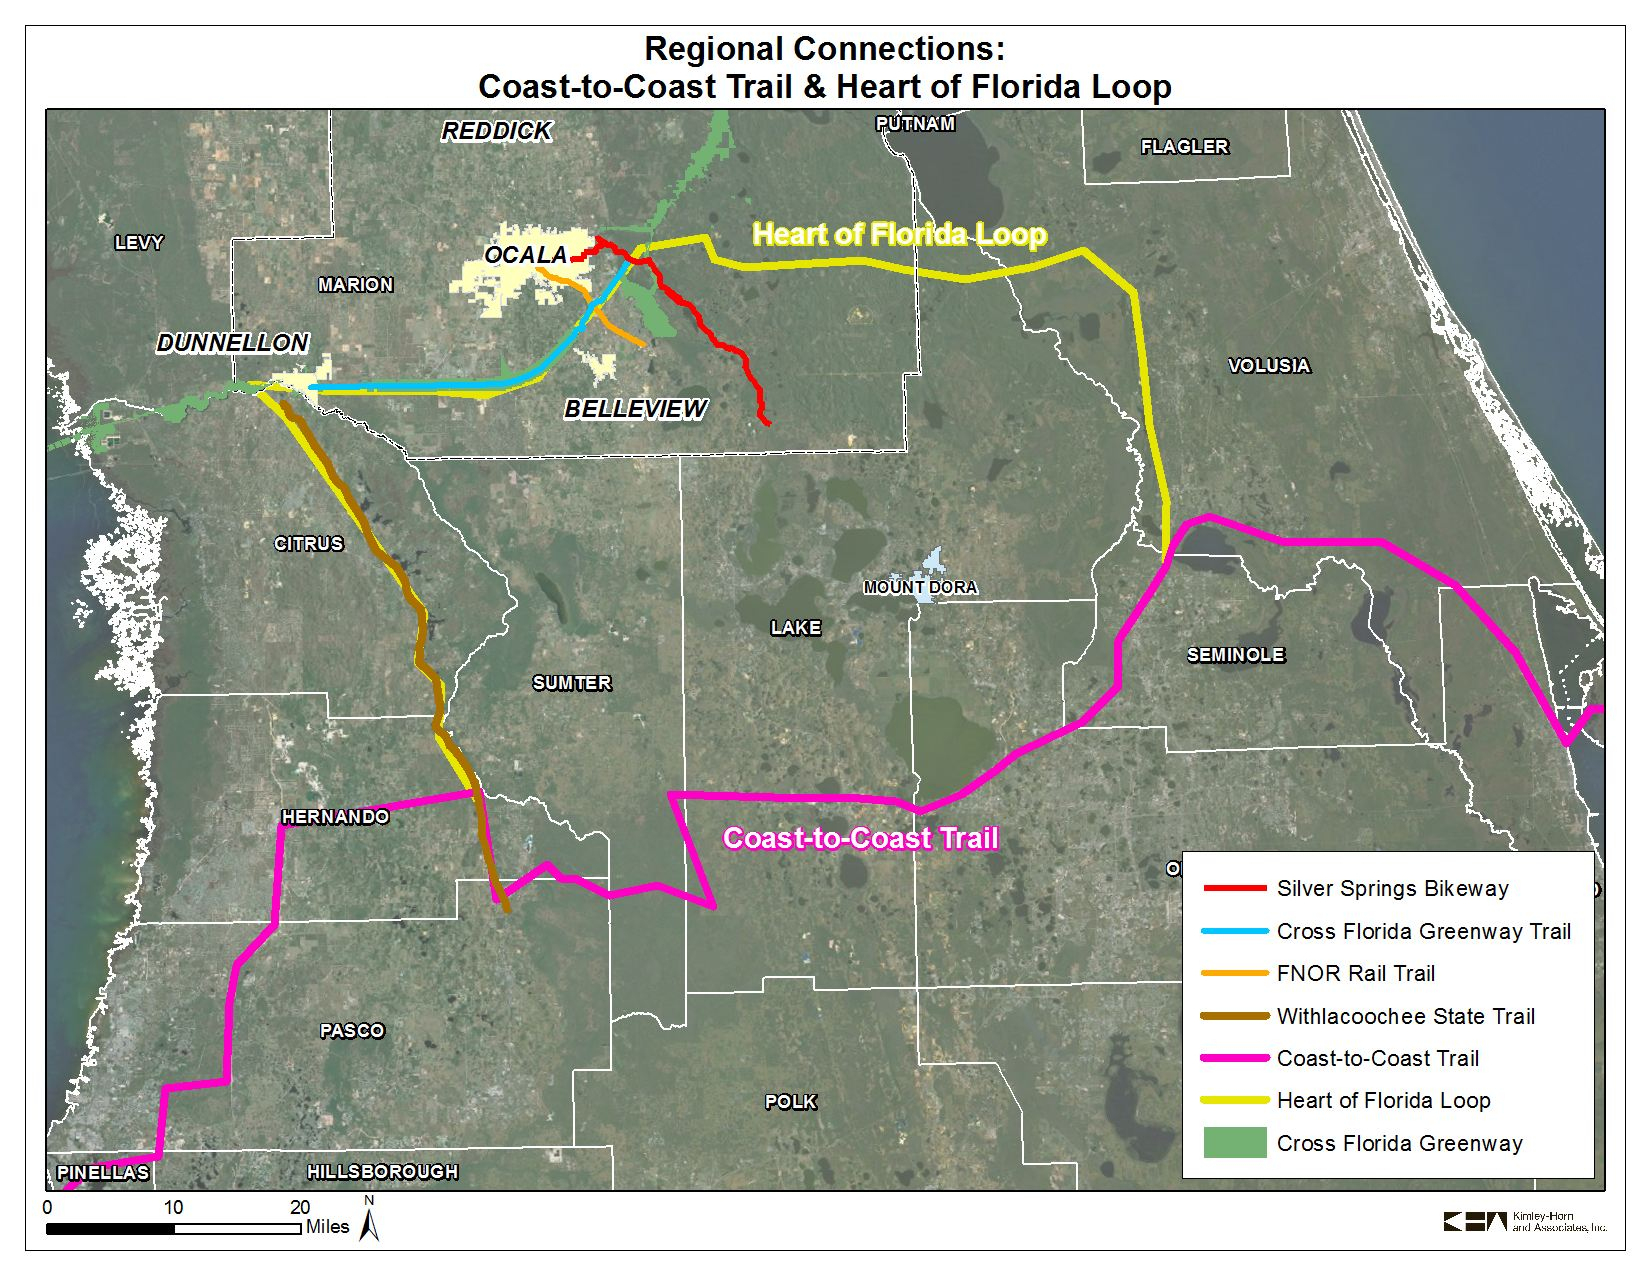 Coast To Coast Trail And Heart Of Florida Loop | 2035 Bicycle And - Central Florida Bike Trails Map